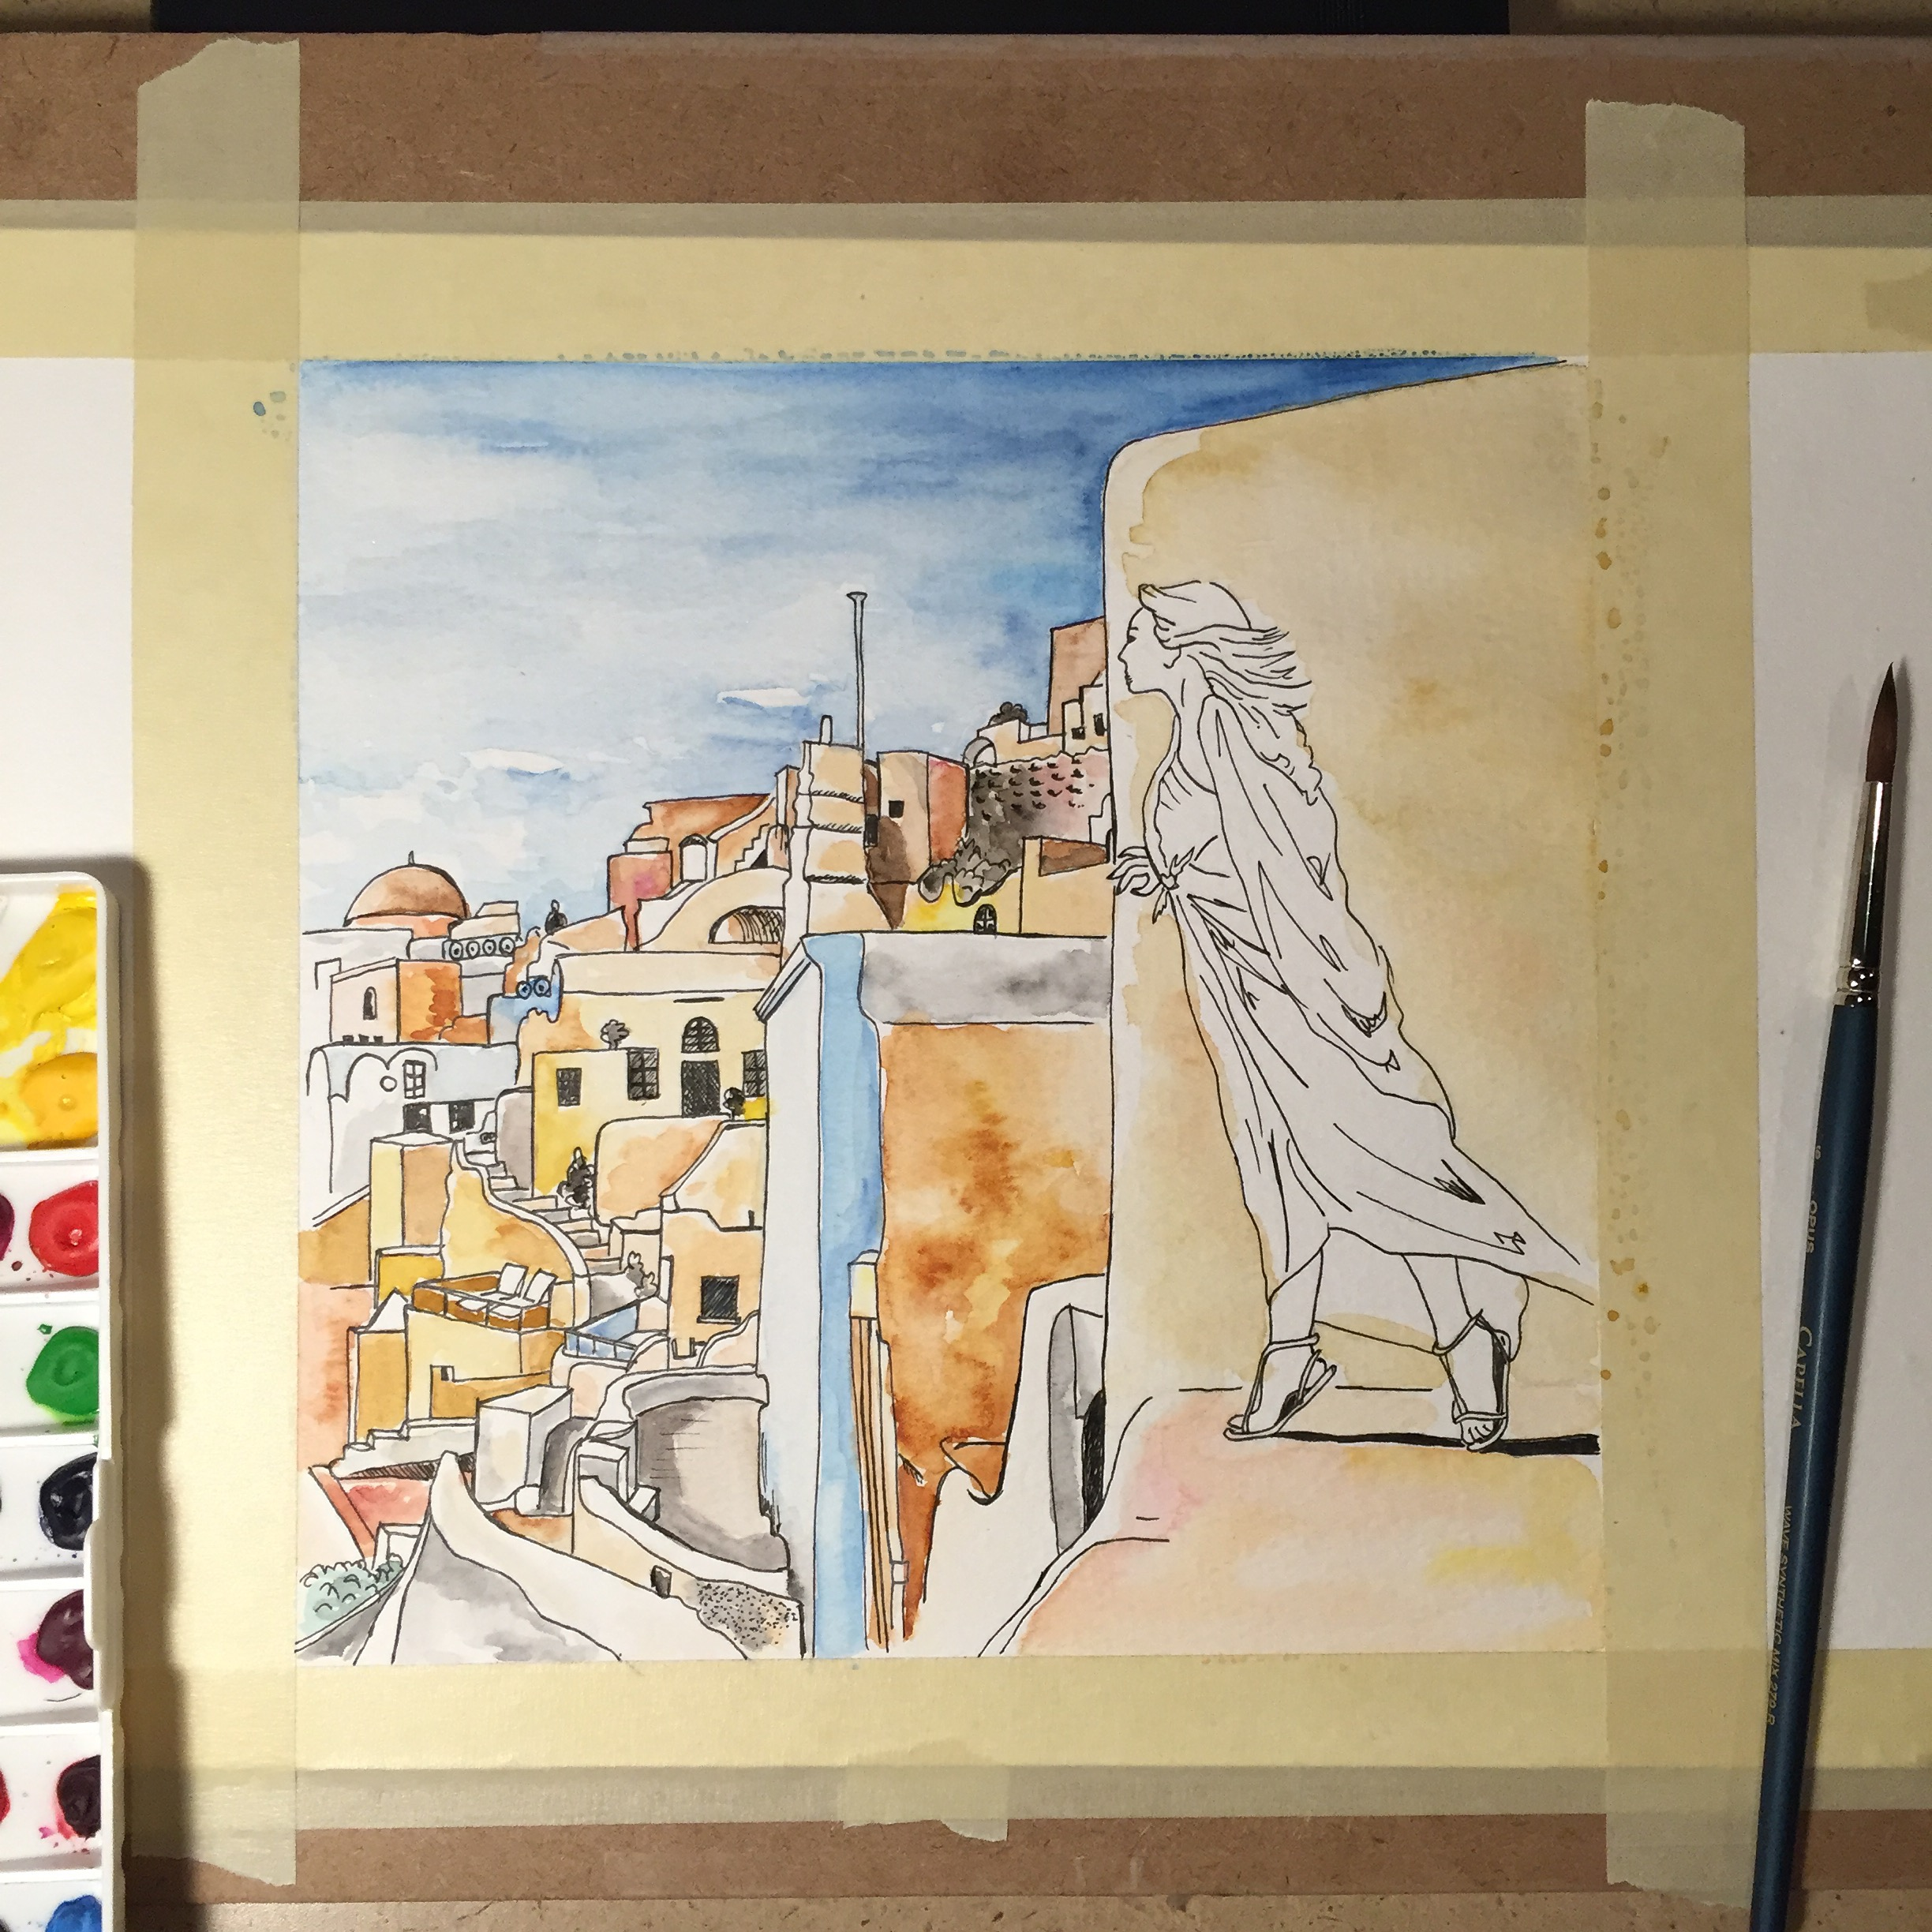 Followed by the first few layers of watercolour.